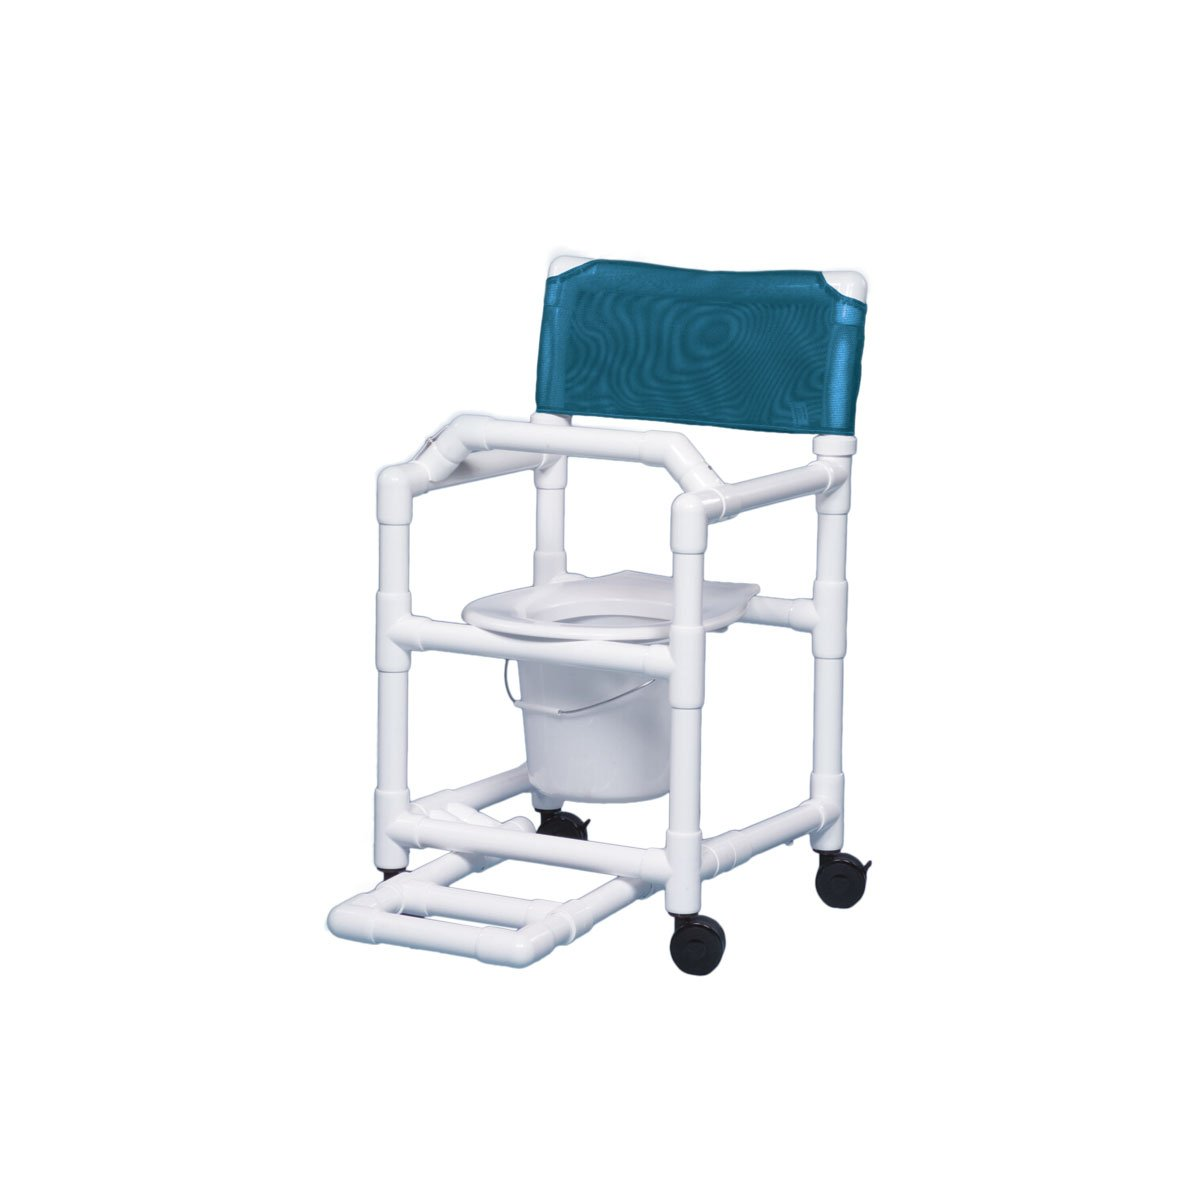 Shower Chair Commode with Footrest & Lap Bar 16'' Clearance-Teal